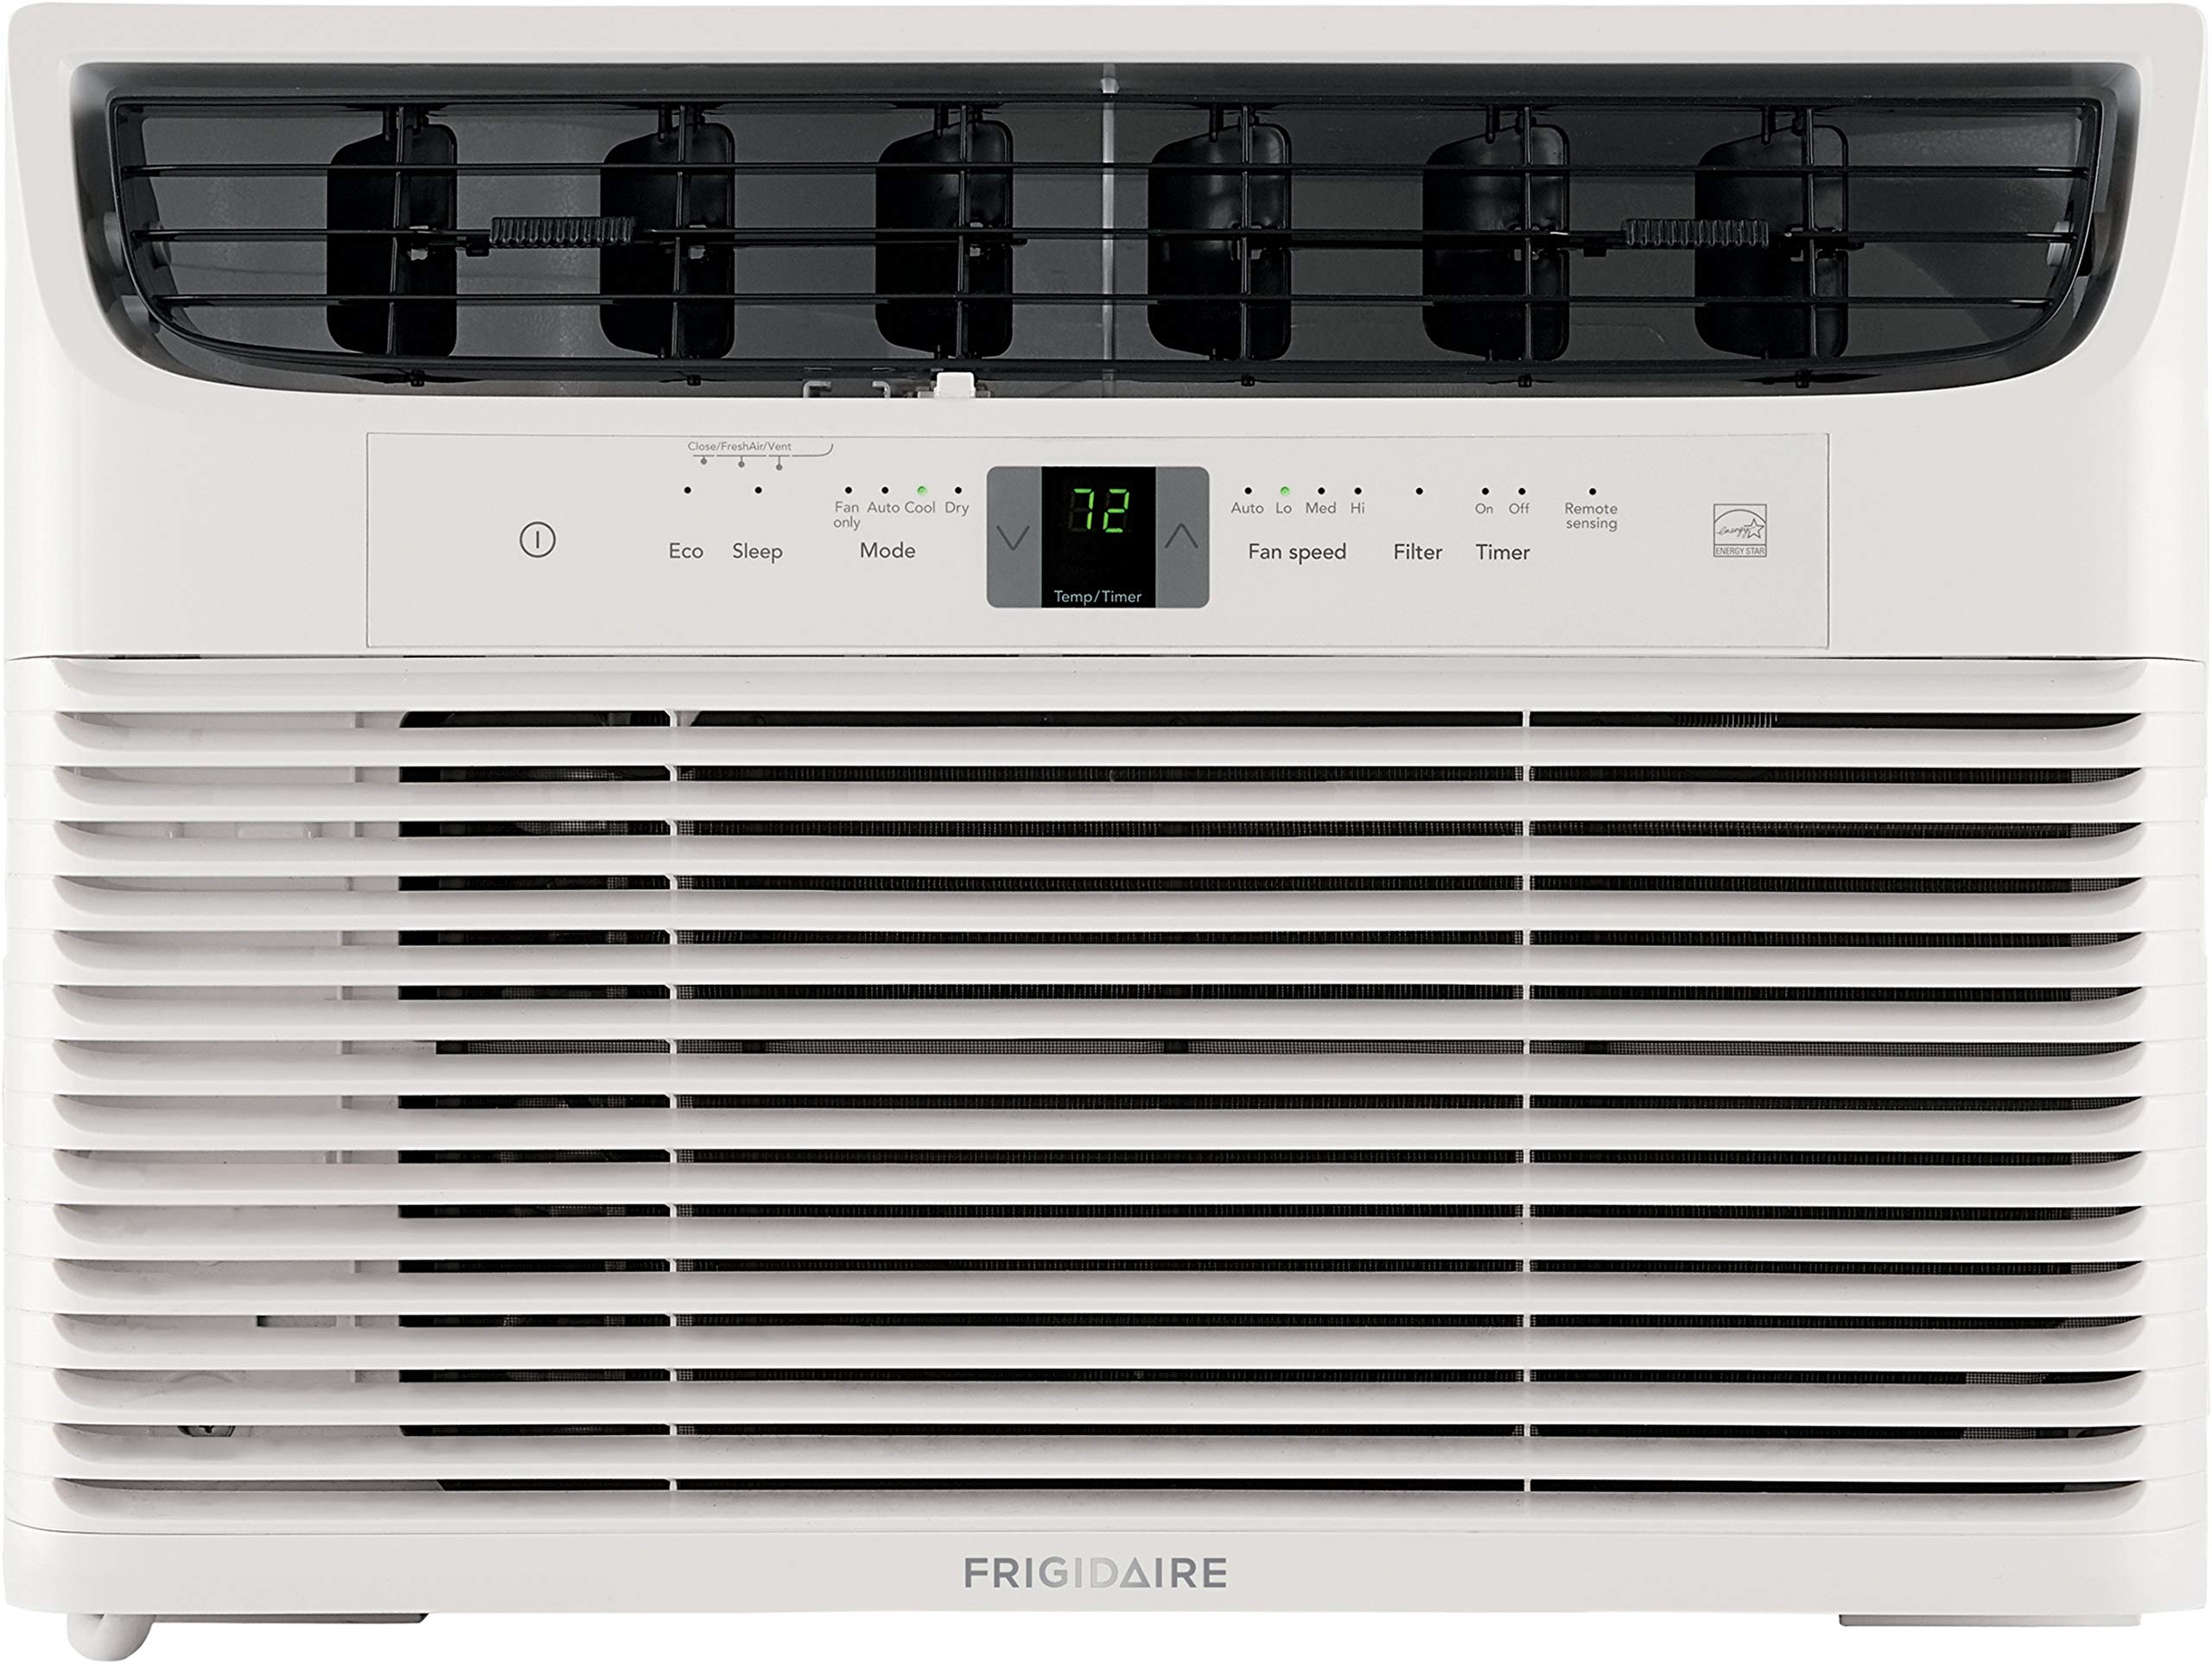 FRIGIDAIRE Energy Star 10,000 BTU 115V Window-Mounted Compact Air Conditioner with Full-Function Remote Control, White by FRIGIDAIRE